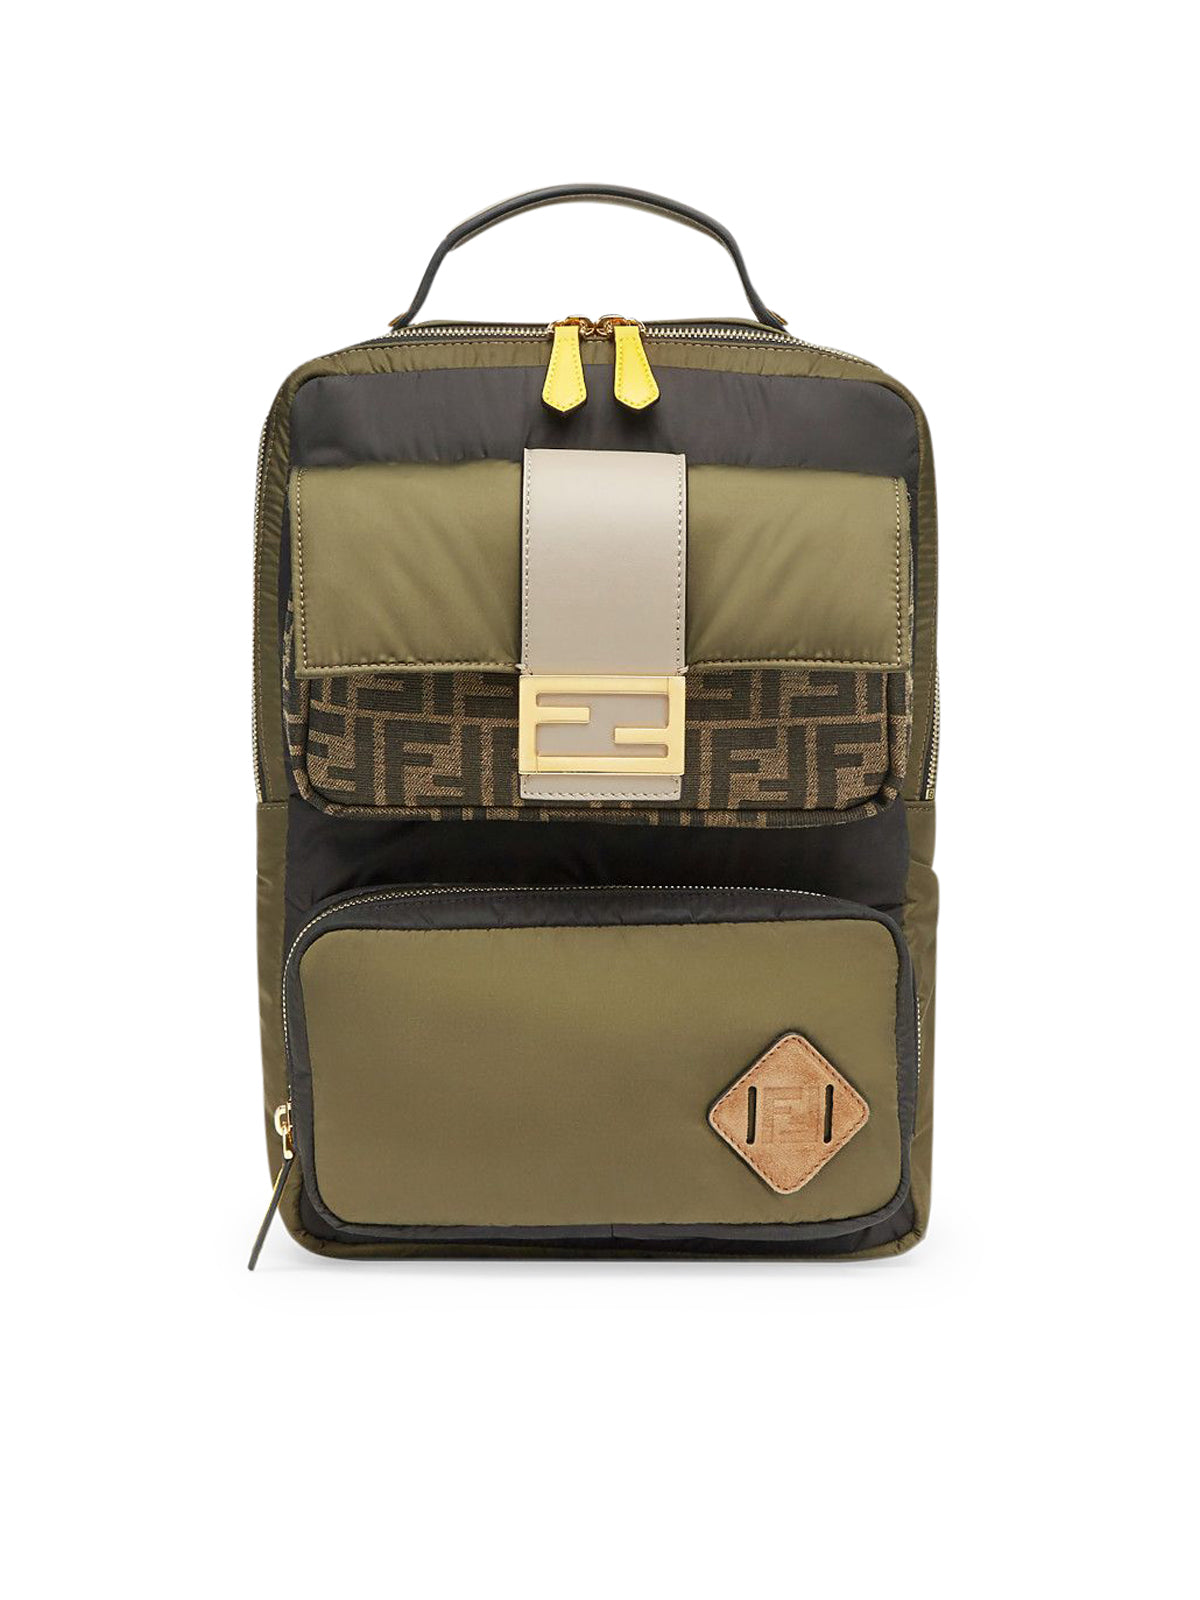 FF pattern backpack